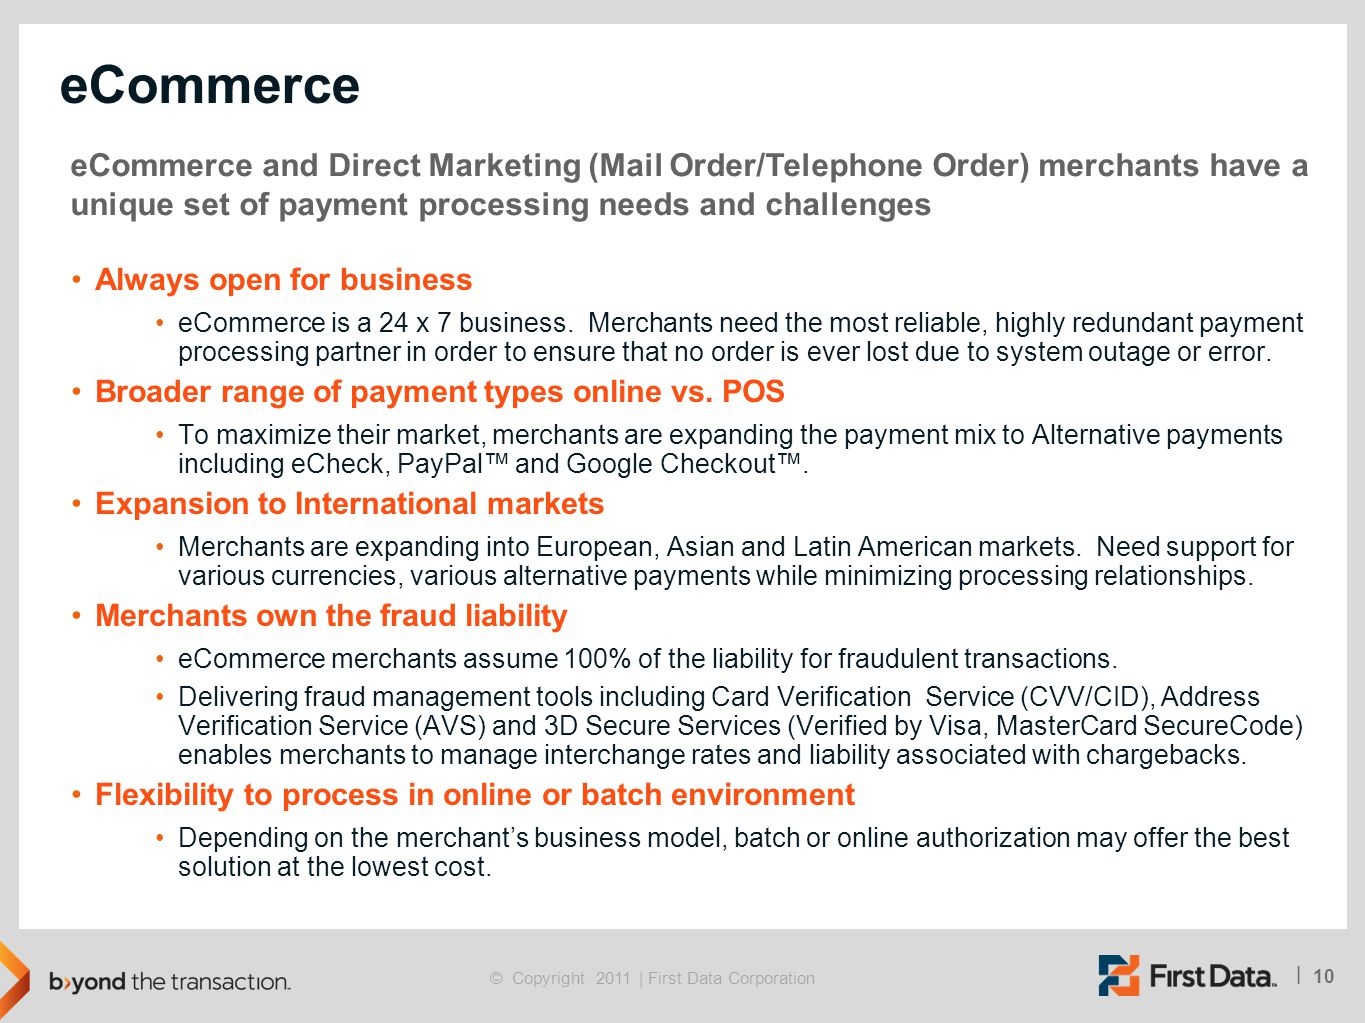 eCommerce eCommerce and Direct Marketing (Mail Order/Telephone Order) merchants have a unique set of payment processing needs and challenges.